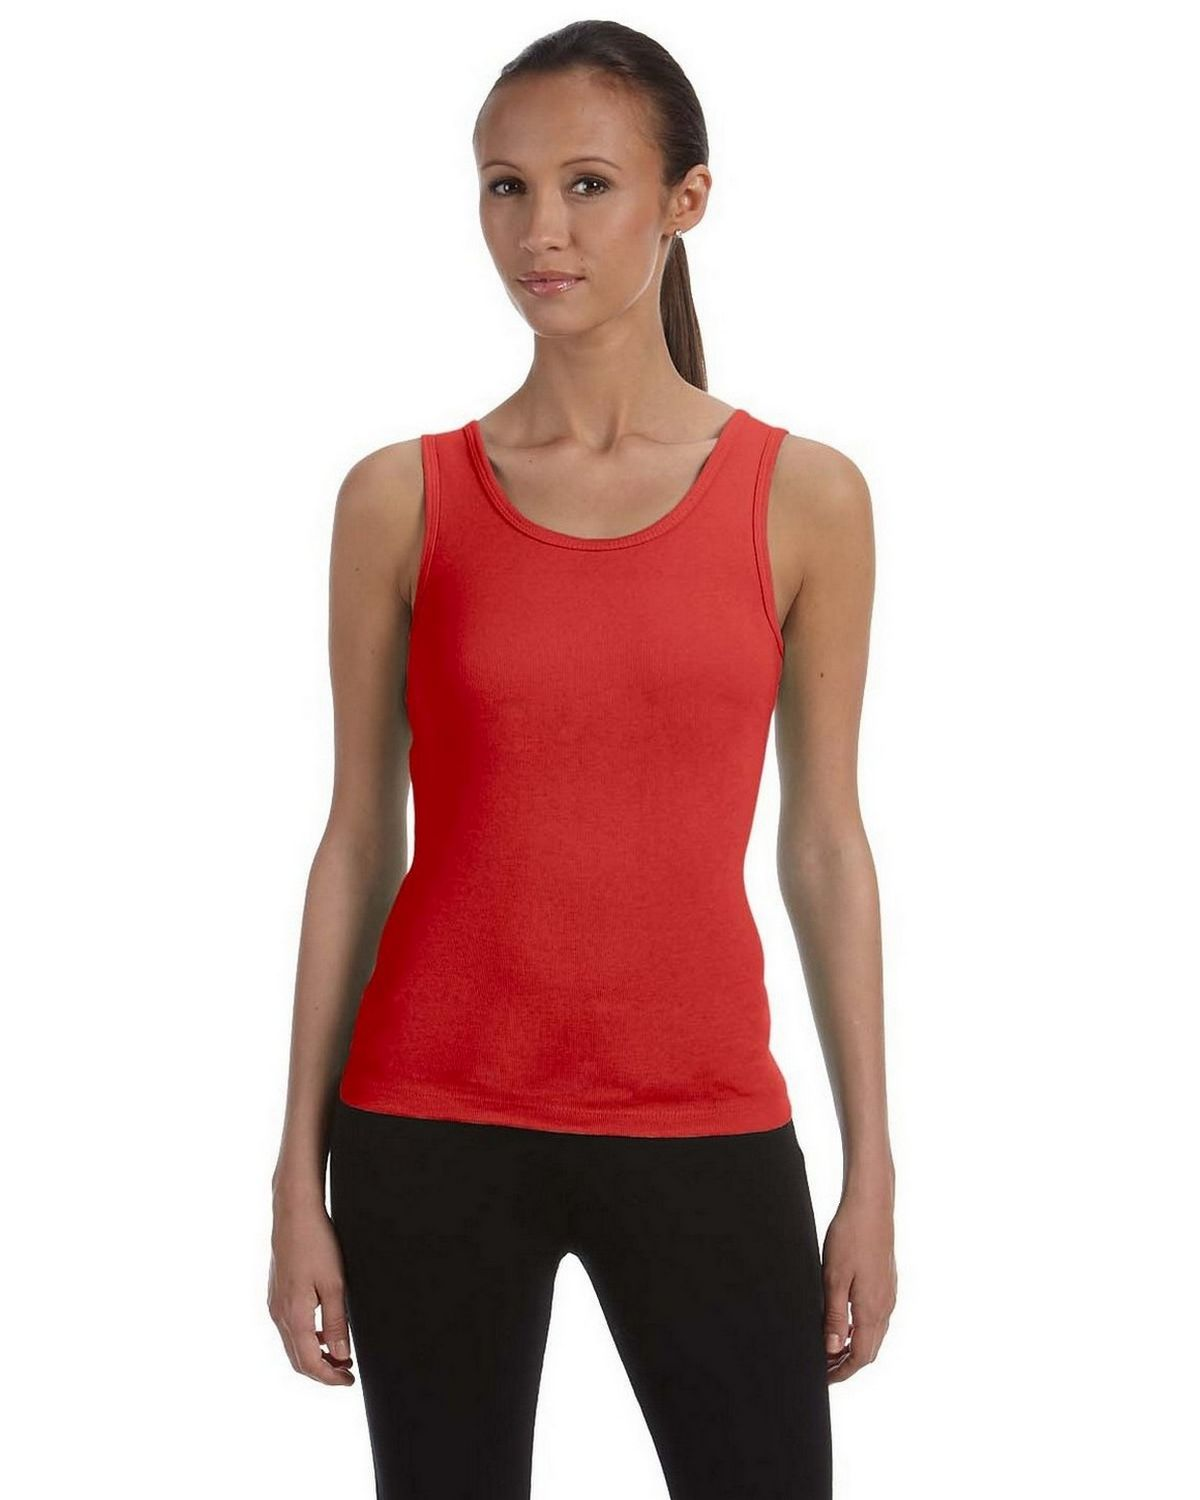 Bella + Canvas 1080 Ladies 1x1 Baby Rib Wide Strap Tank - Red - S 1080